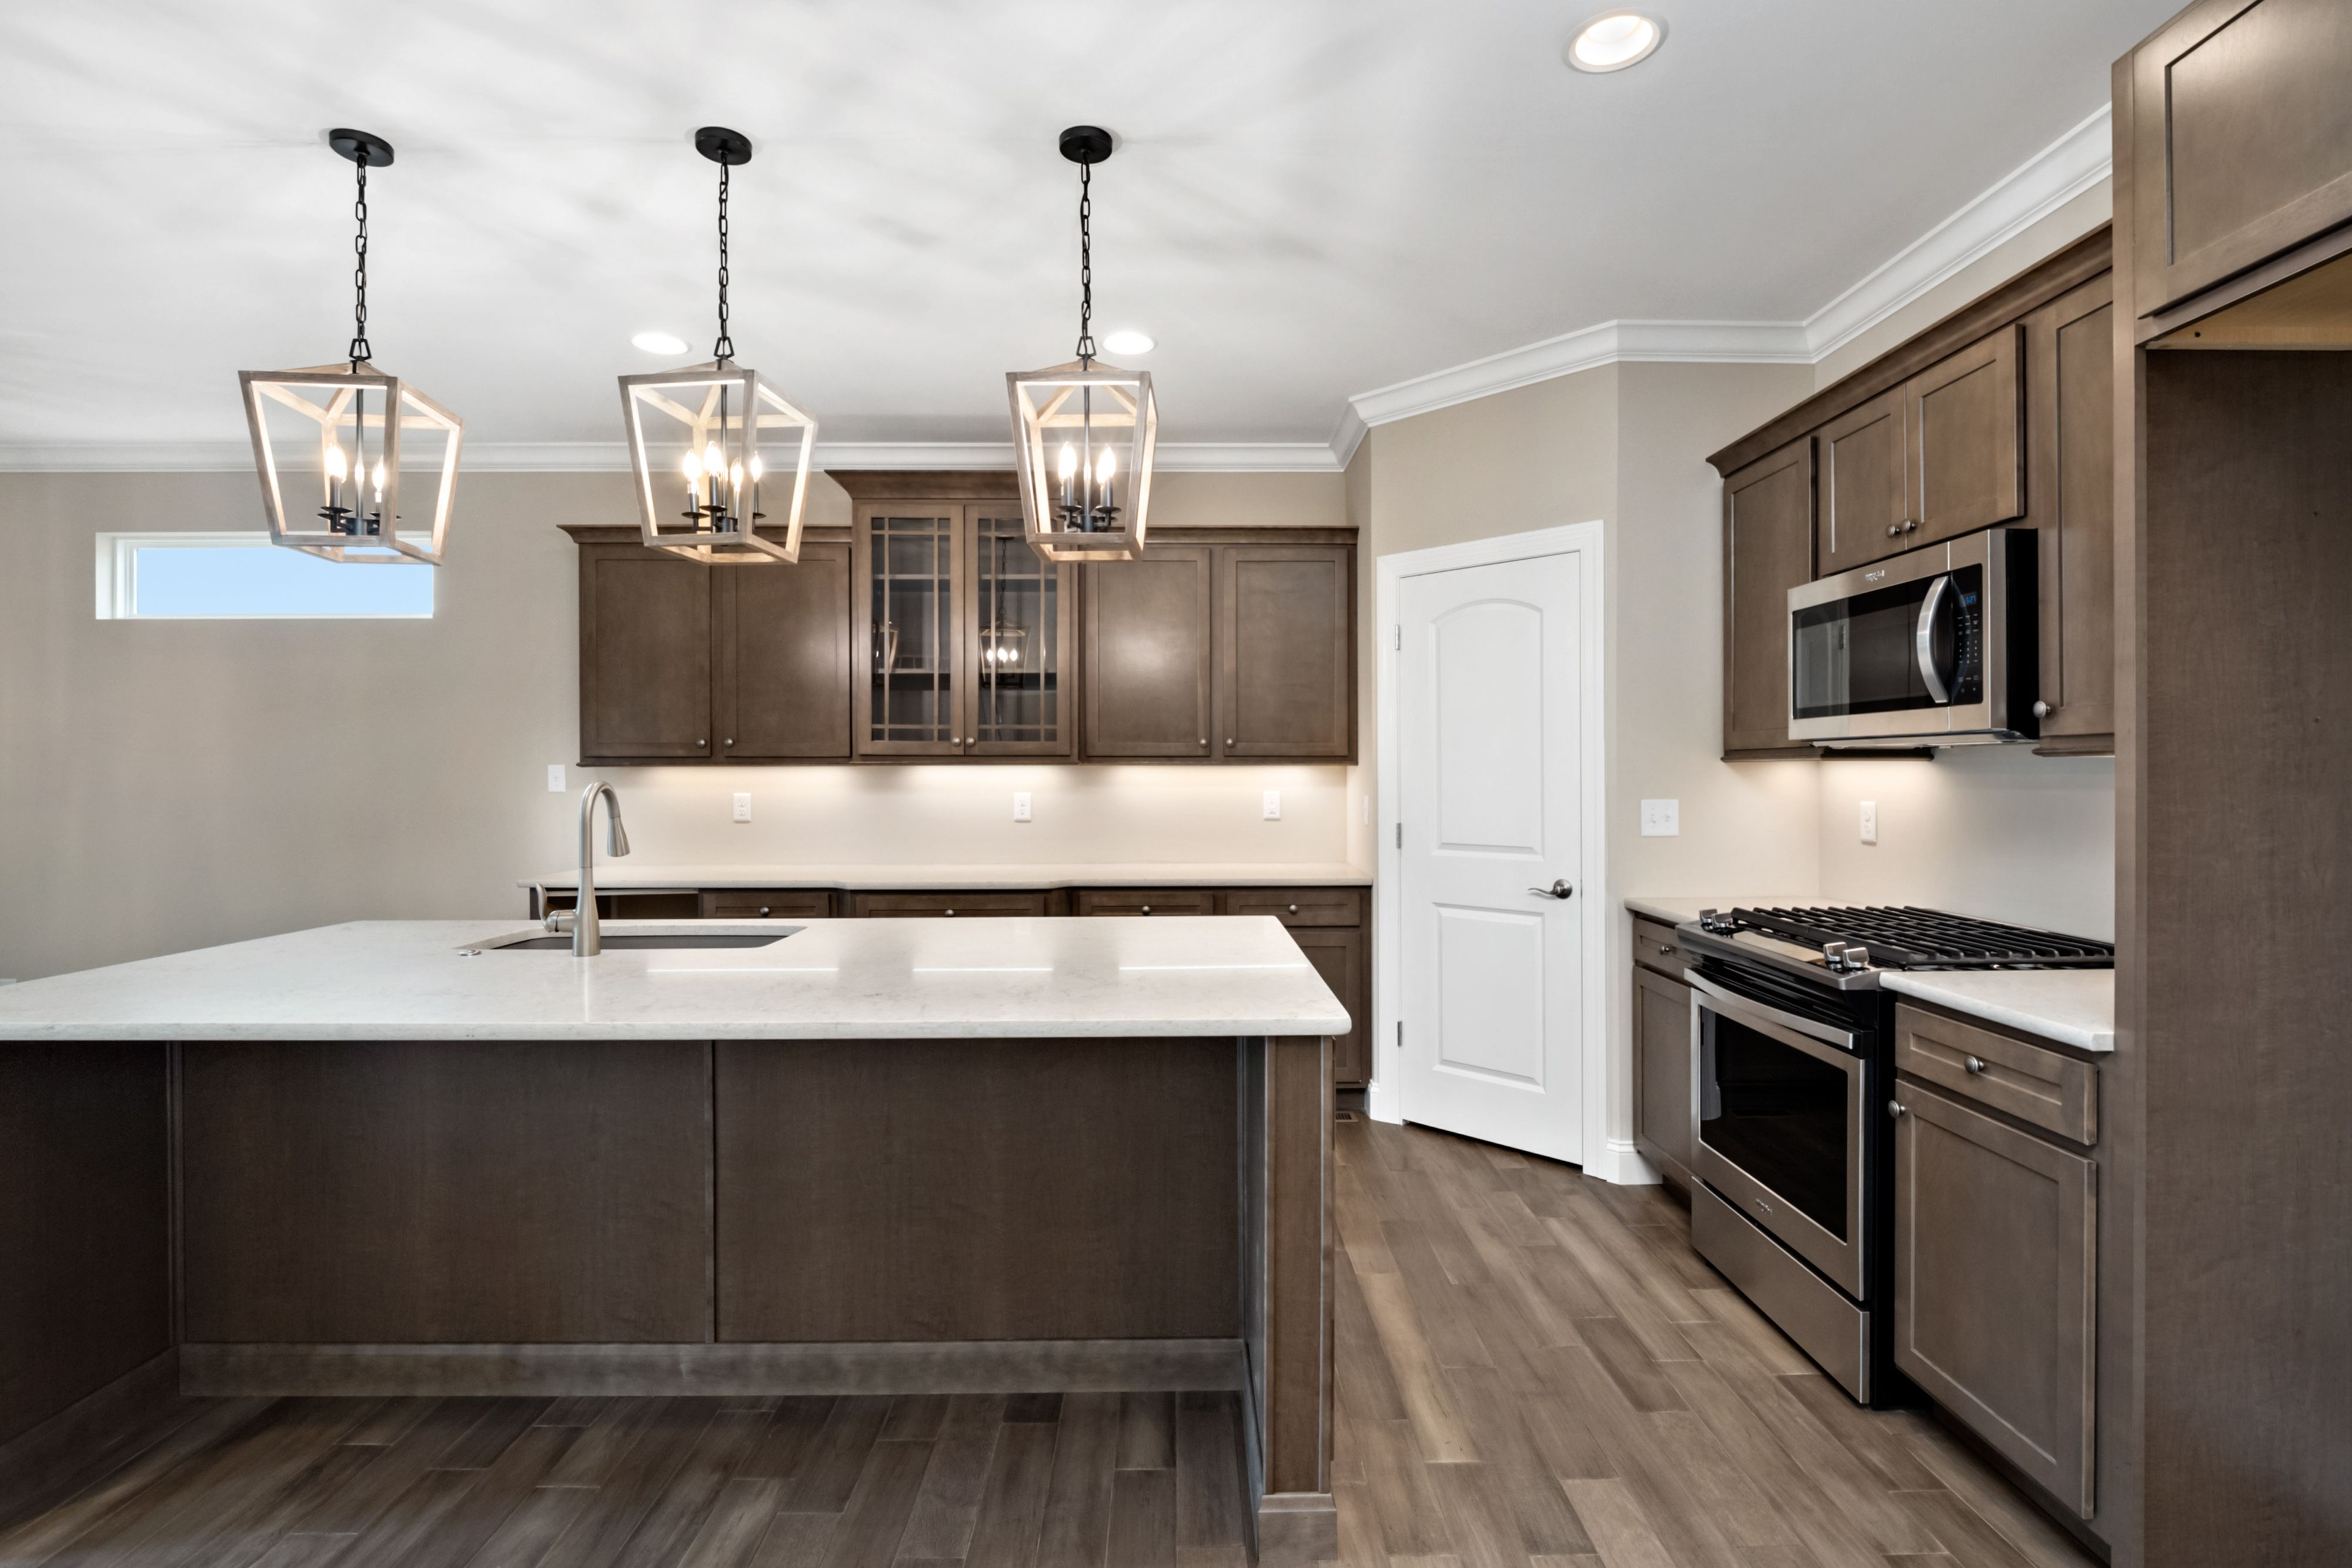 Kitchen featured in The Grand Columbia II By The Kemp Homes Company  in St. Louis, MO